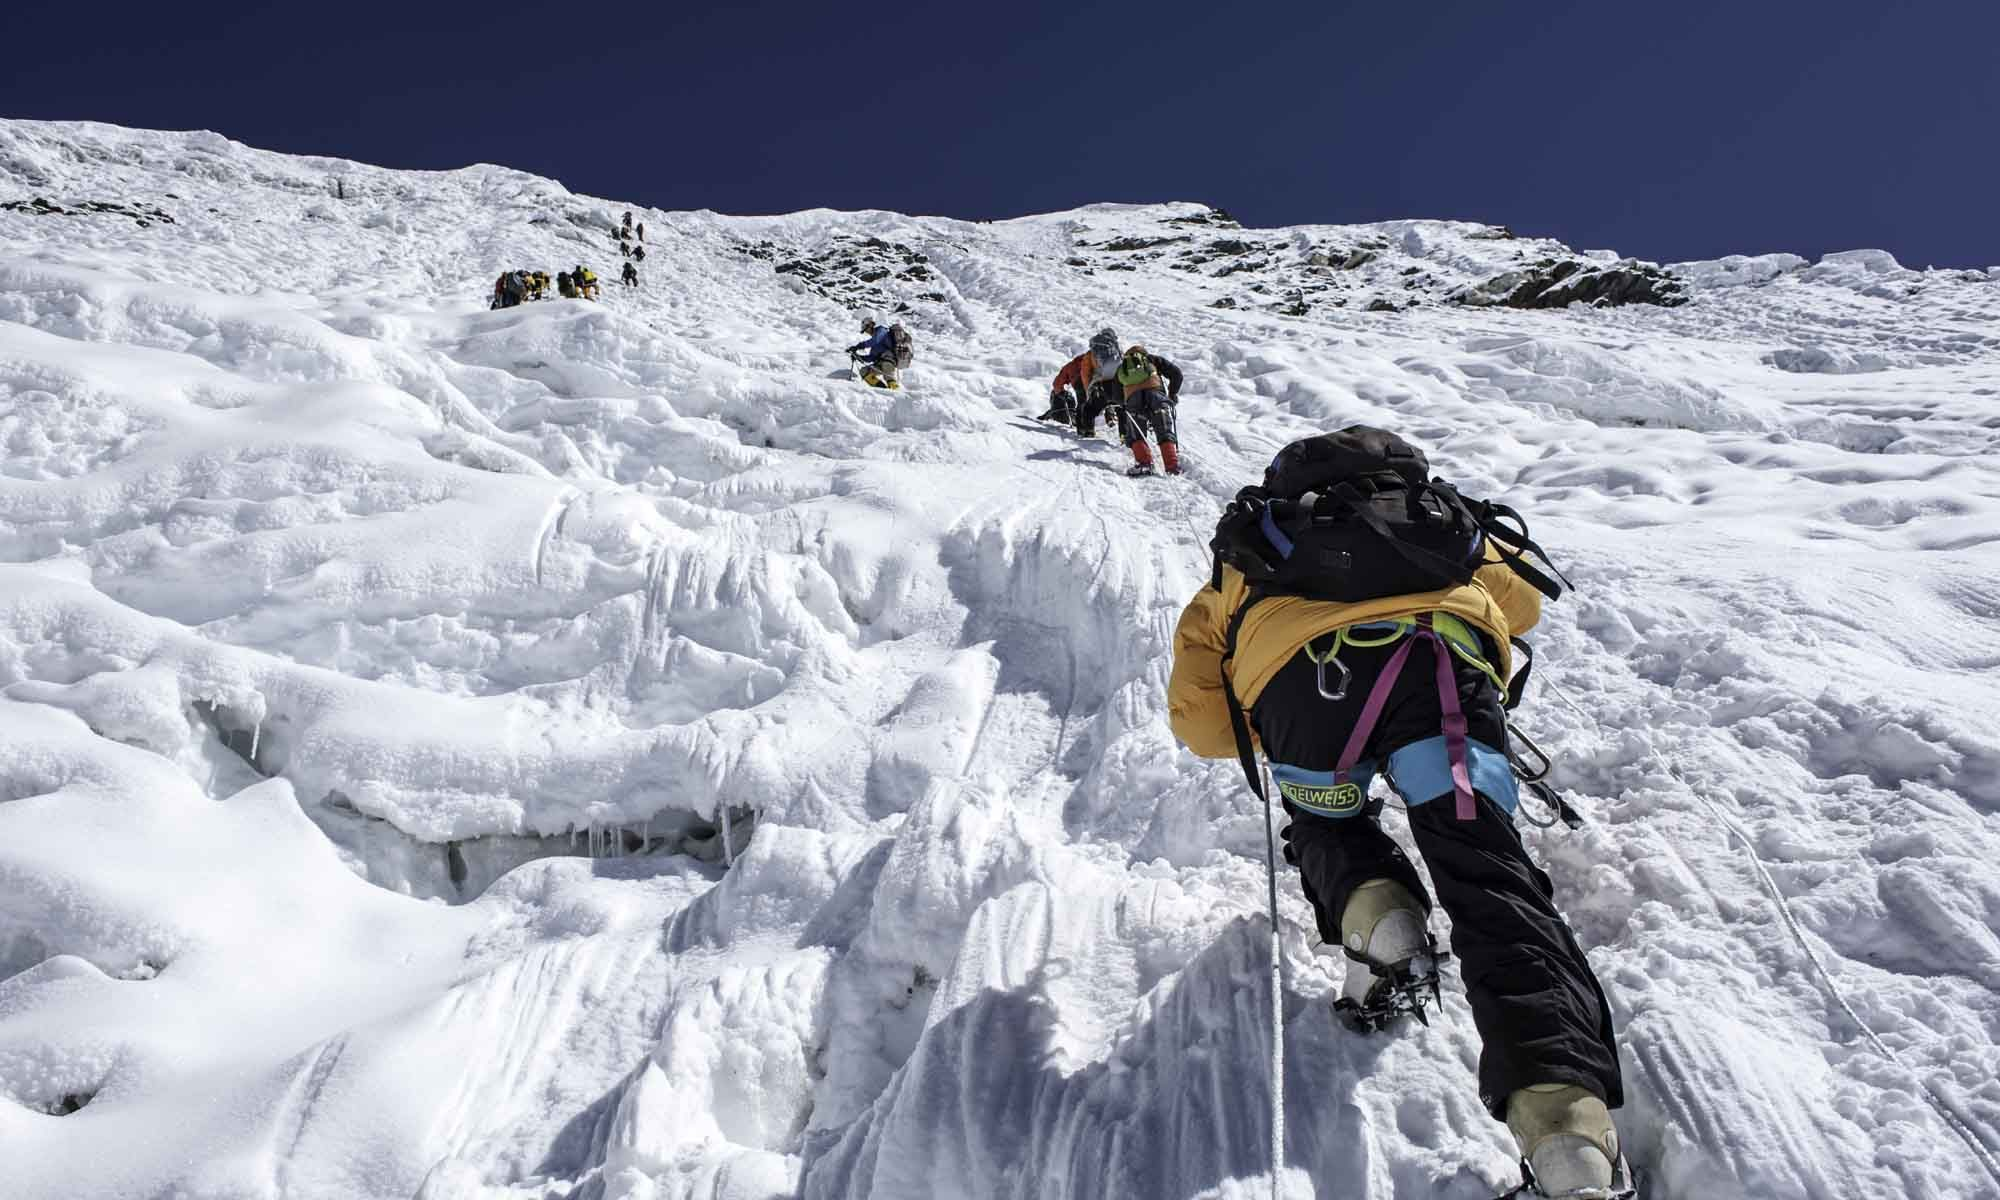 42 High-Altitude Facts About Mount Everest